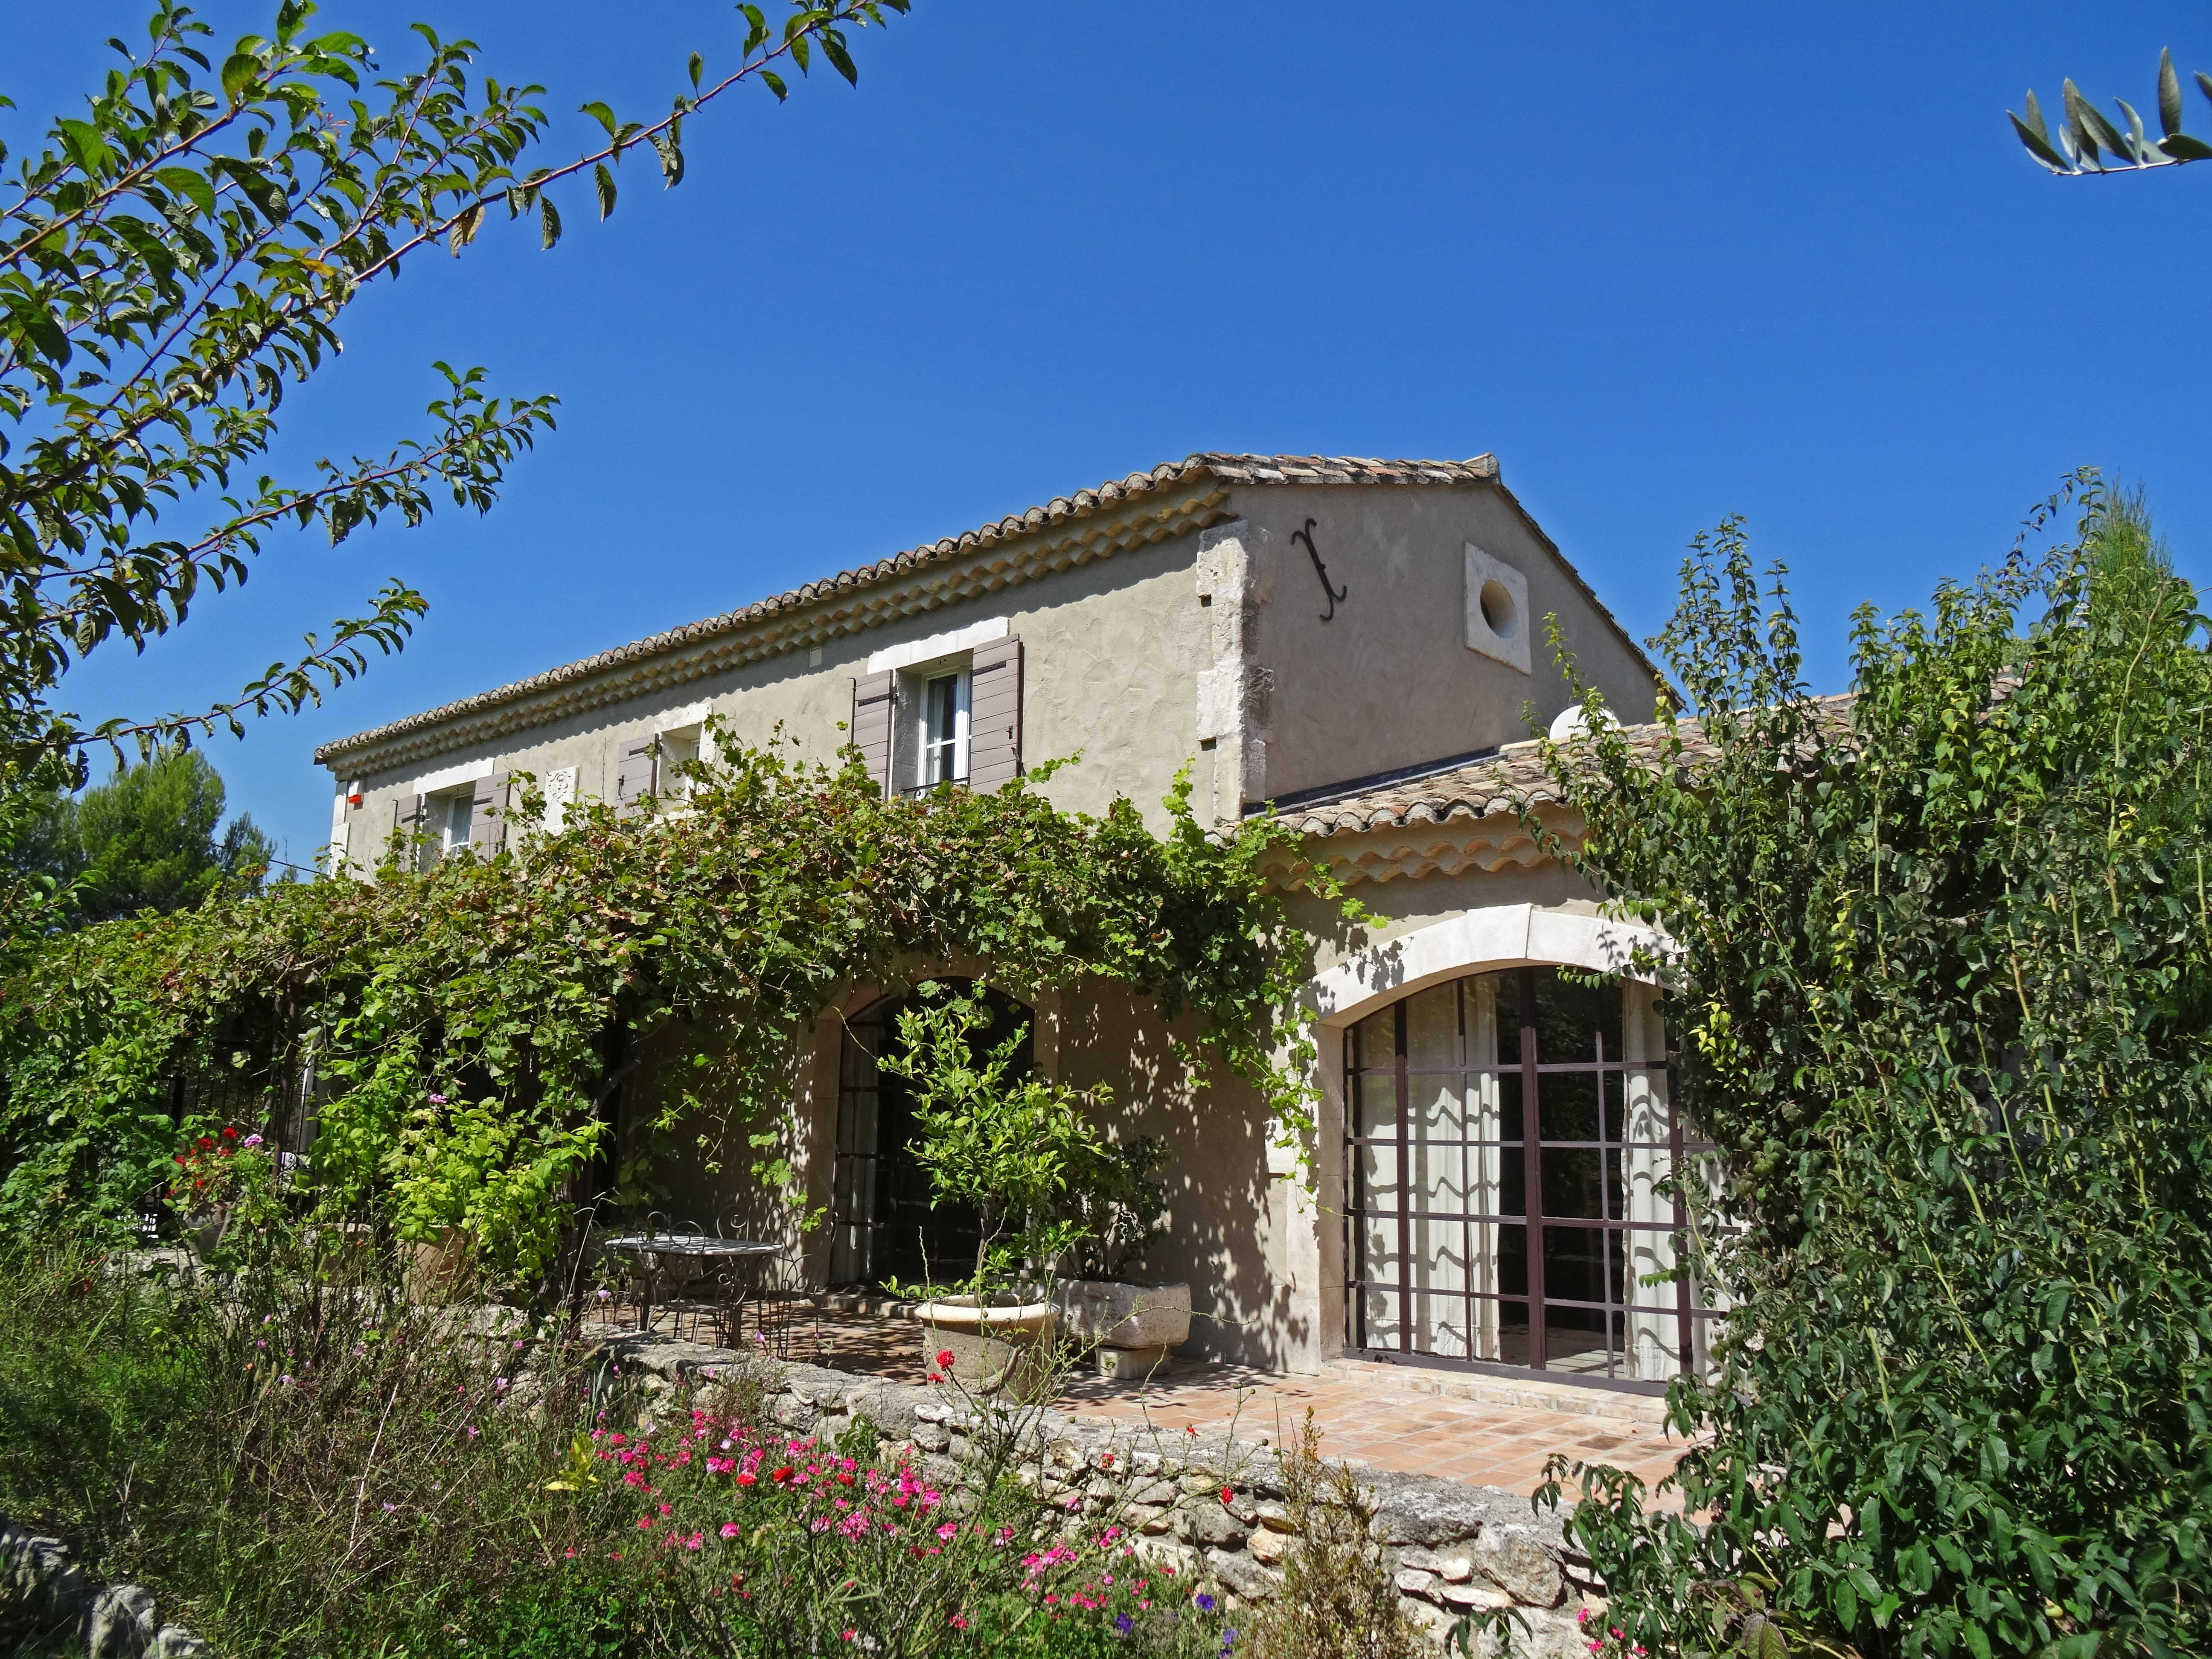 Single Family Home for Sale at Charming house in Saint Remy de Provence Saint Remy De Provence, Provence-Alpes-Cote D'Azur 13210 France